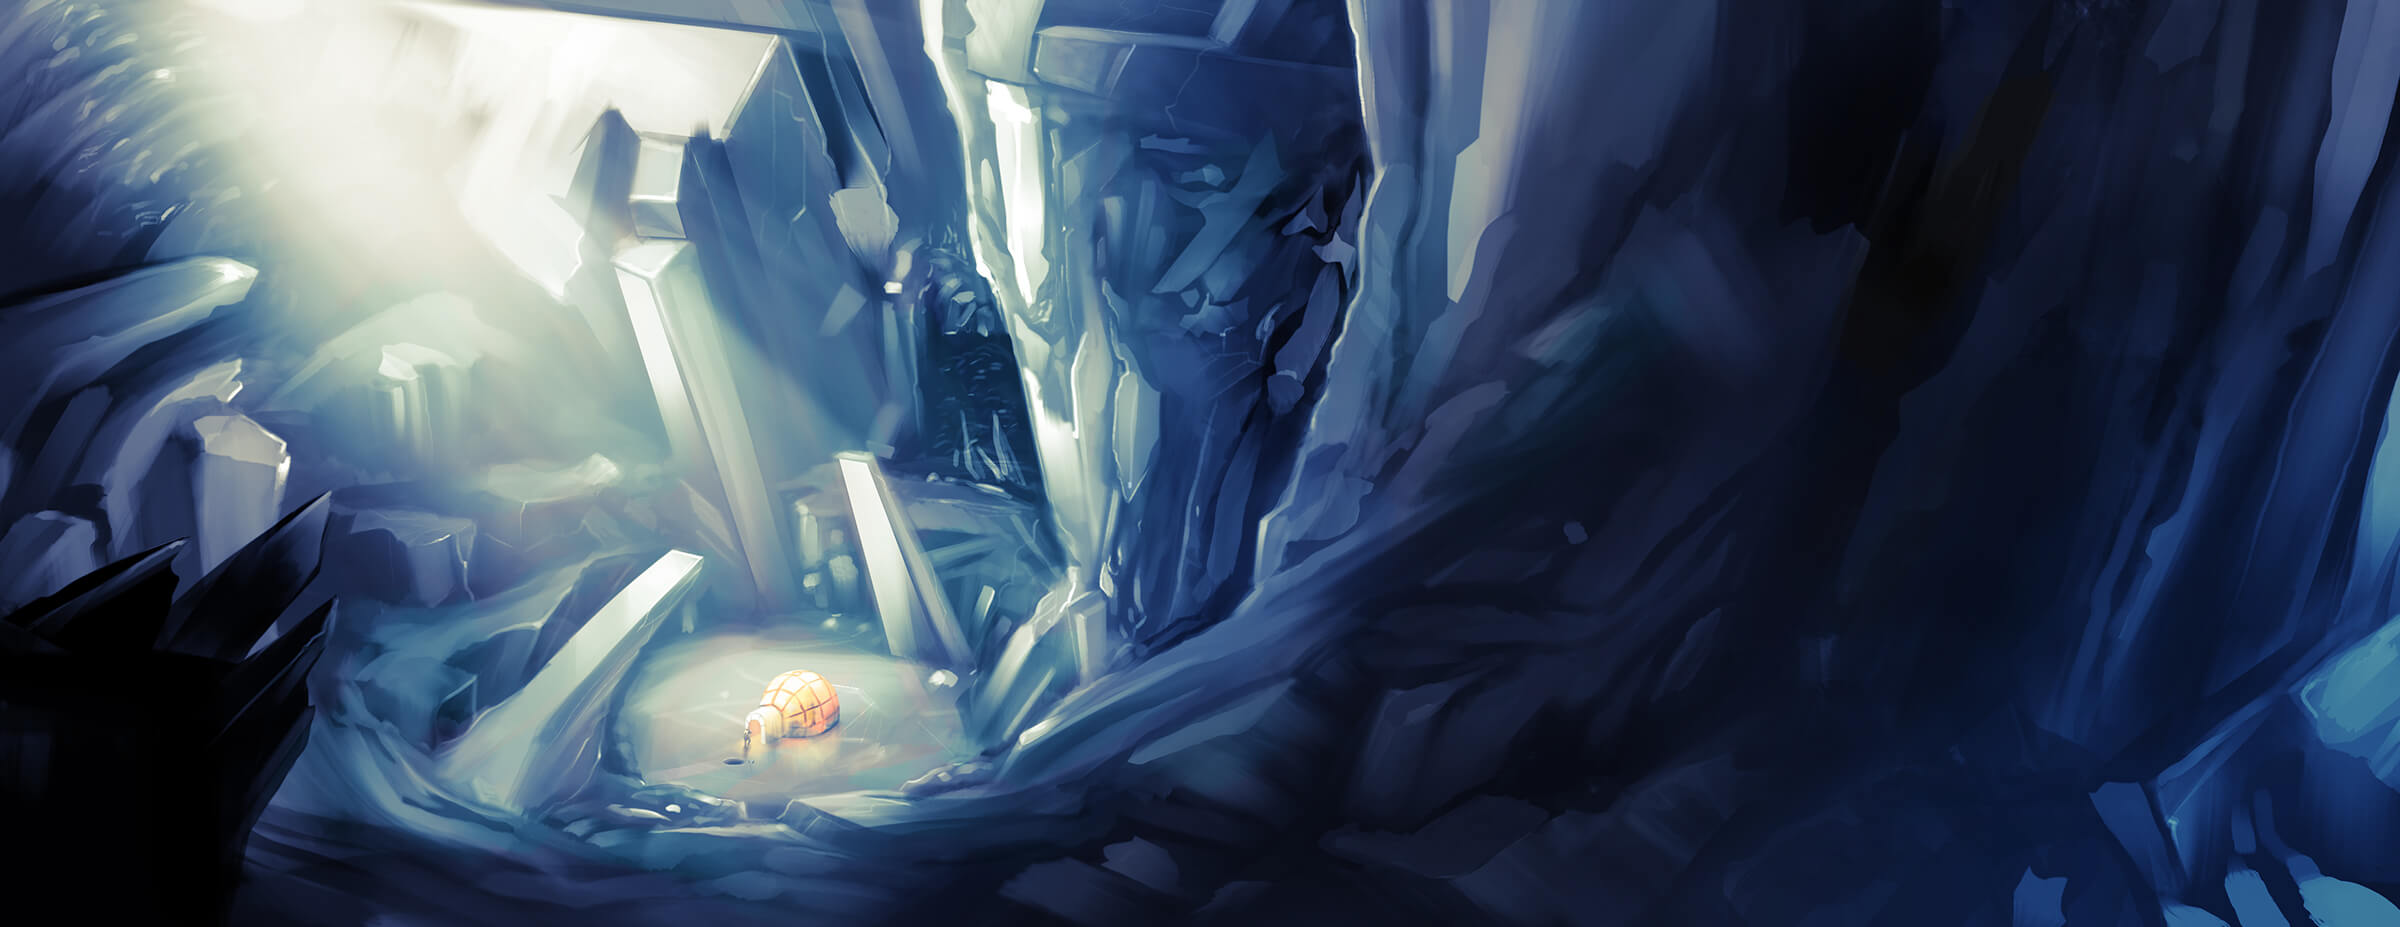 digital painting of a small igloo at the bottom of an ice-filled cavern with rays of sunlight